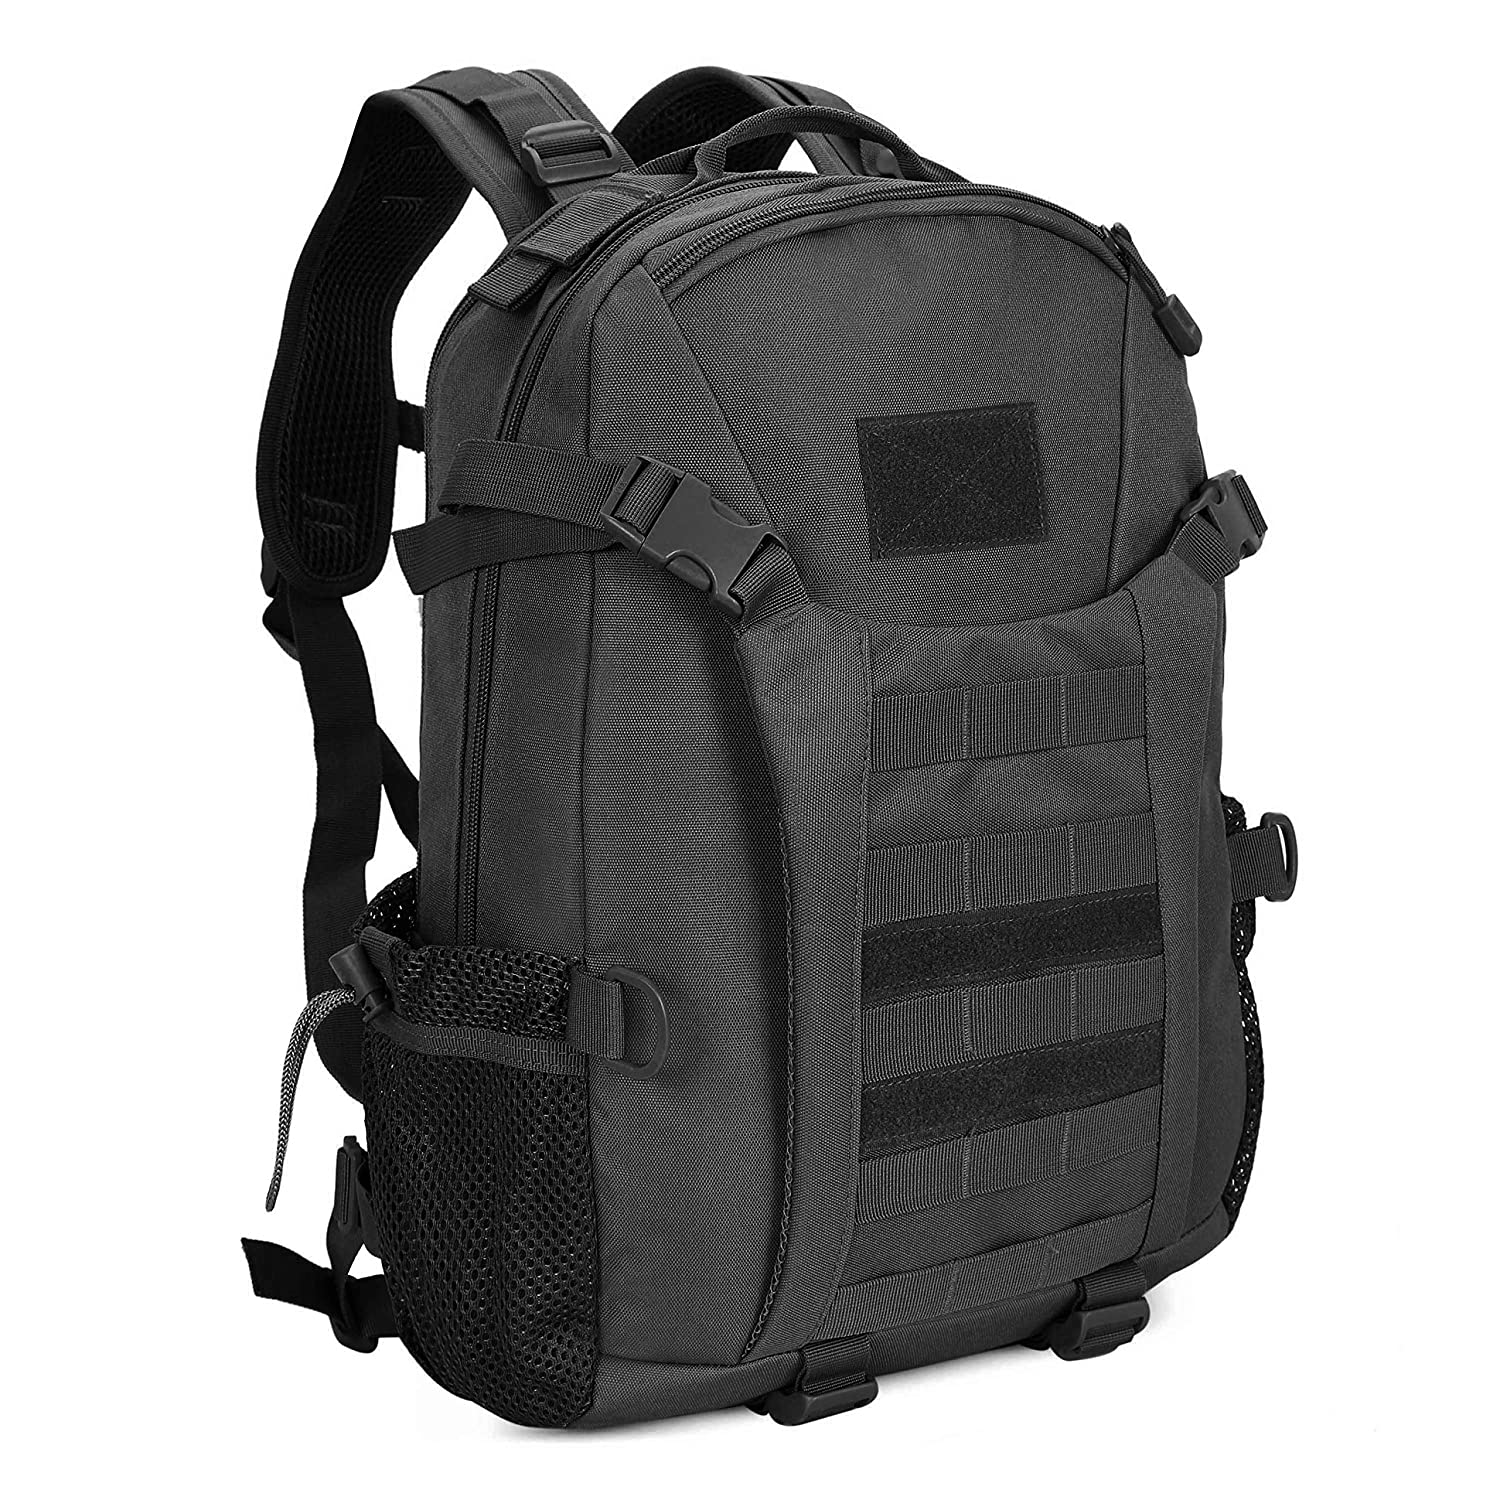 Amazon.com   Tactical Military Backpack 35L Army Assault Pack Waterproof  College School Rucksack Sports Travel Hiking Camping Trekking (Black)    Sports   ... 47505f7efbedb